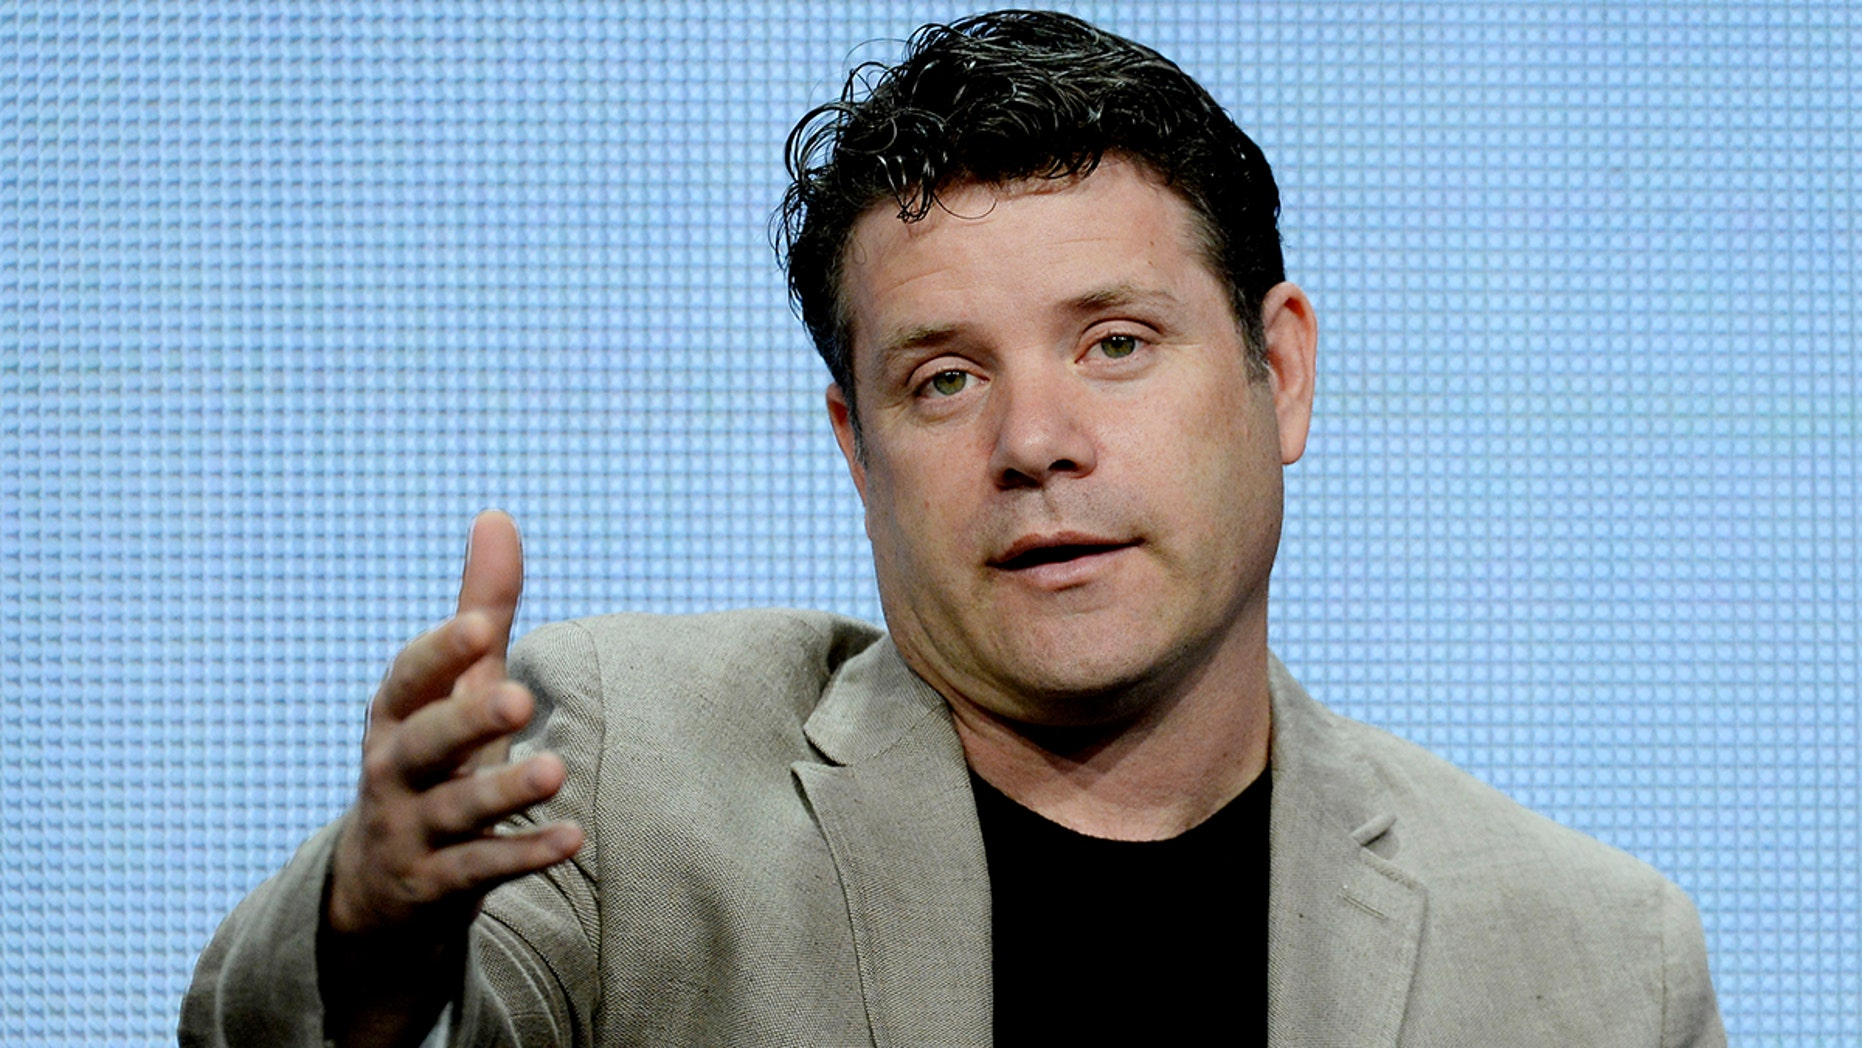 """Cast member Sean Astin of the new drama series """"The Strain"""" participates in a panel discussion during FX Networks' portion of the 2014 Television Critics Association Cable Summer Press Tour in Beverly Hills, California July 21, 2014. REUTERS/Kevork Djansezian  (UNITED STATES - Tags: ENTERTAINMENT) - GM1EA7M0PCO01"""